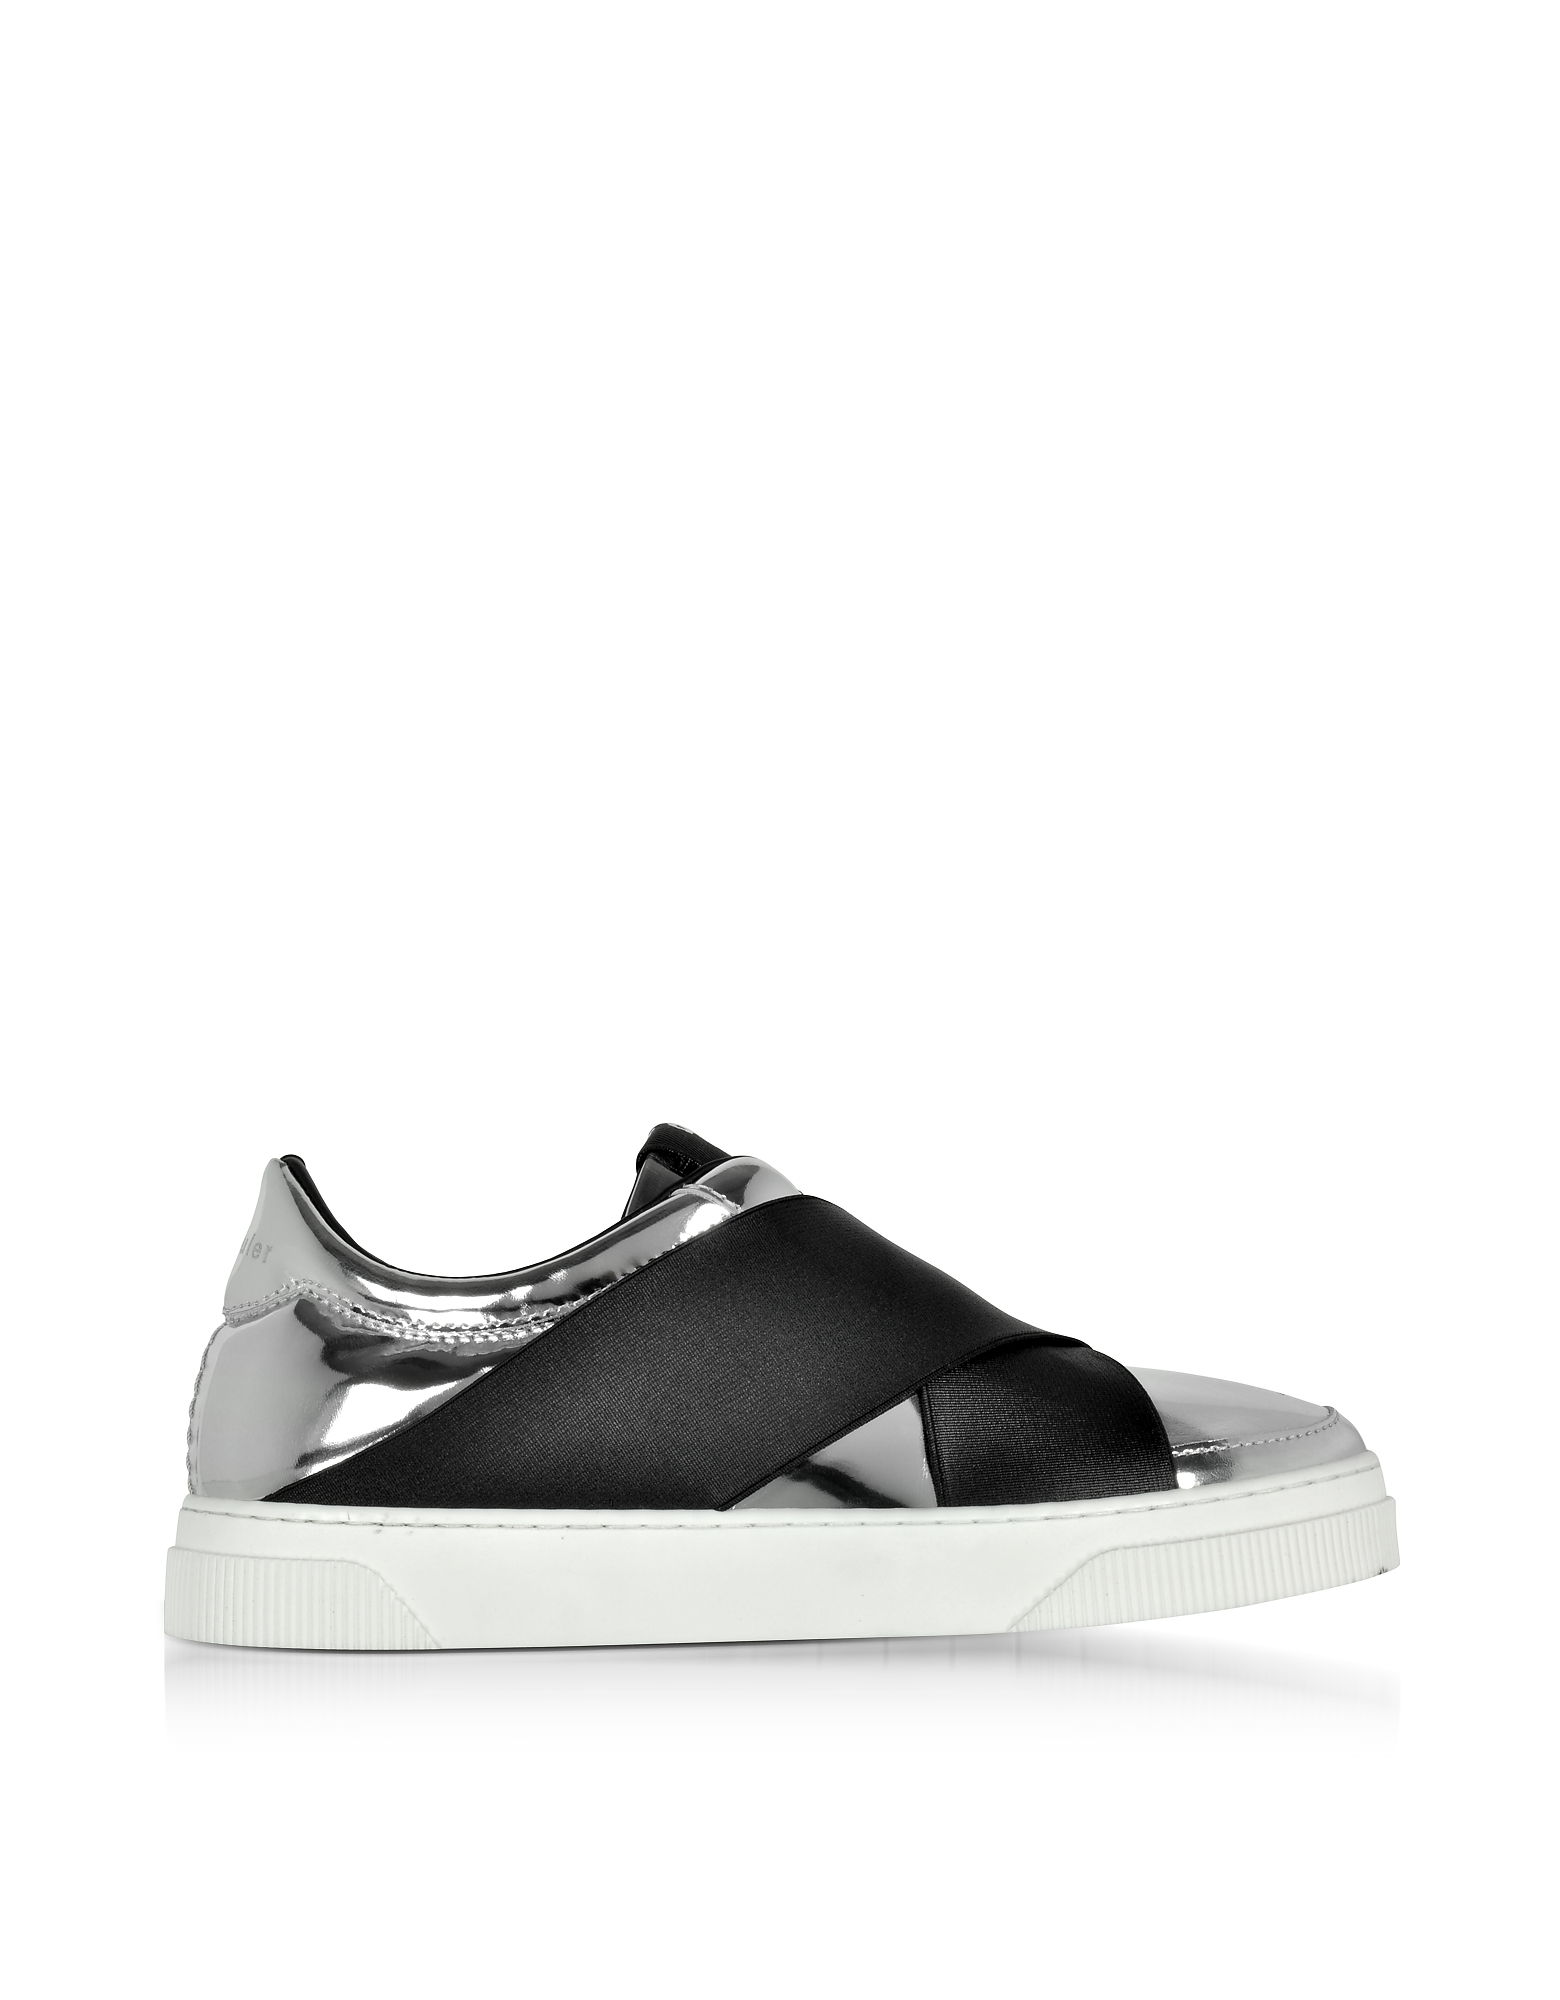 Proenza Schouler Shoes, Black and Silver Mirror Leather Slip On Sneakers